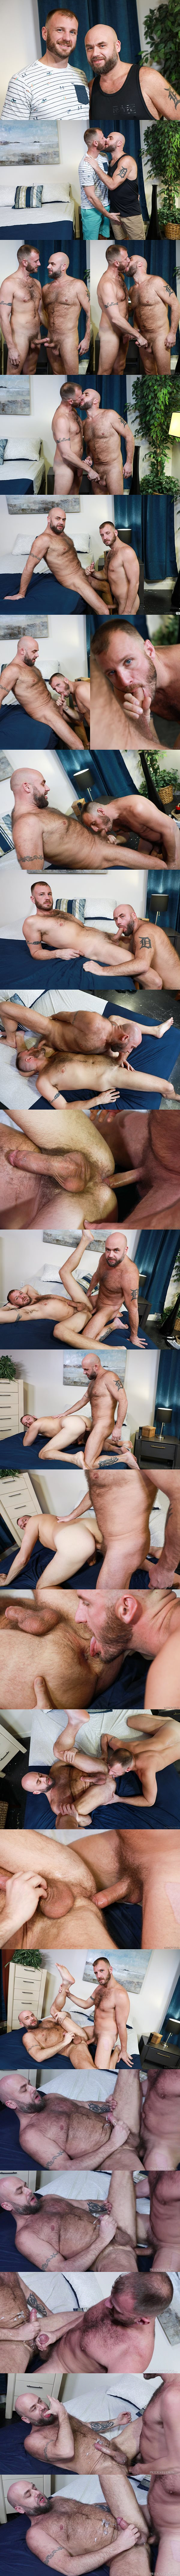 Menover30 - manly fuzzy daddy Chase Ryder and Jax Hammer take turns barebacking each other's firm asses before Chase fucks the cum out of Jax and breeds him in Chase's bottoming debut in Versatile Fur 02